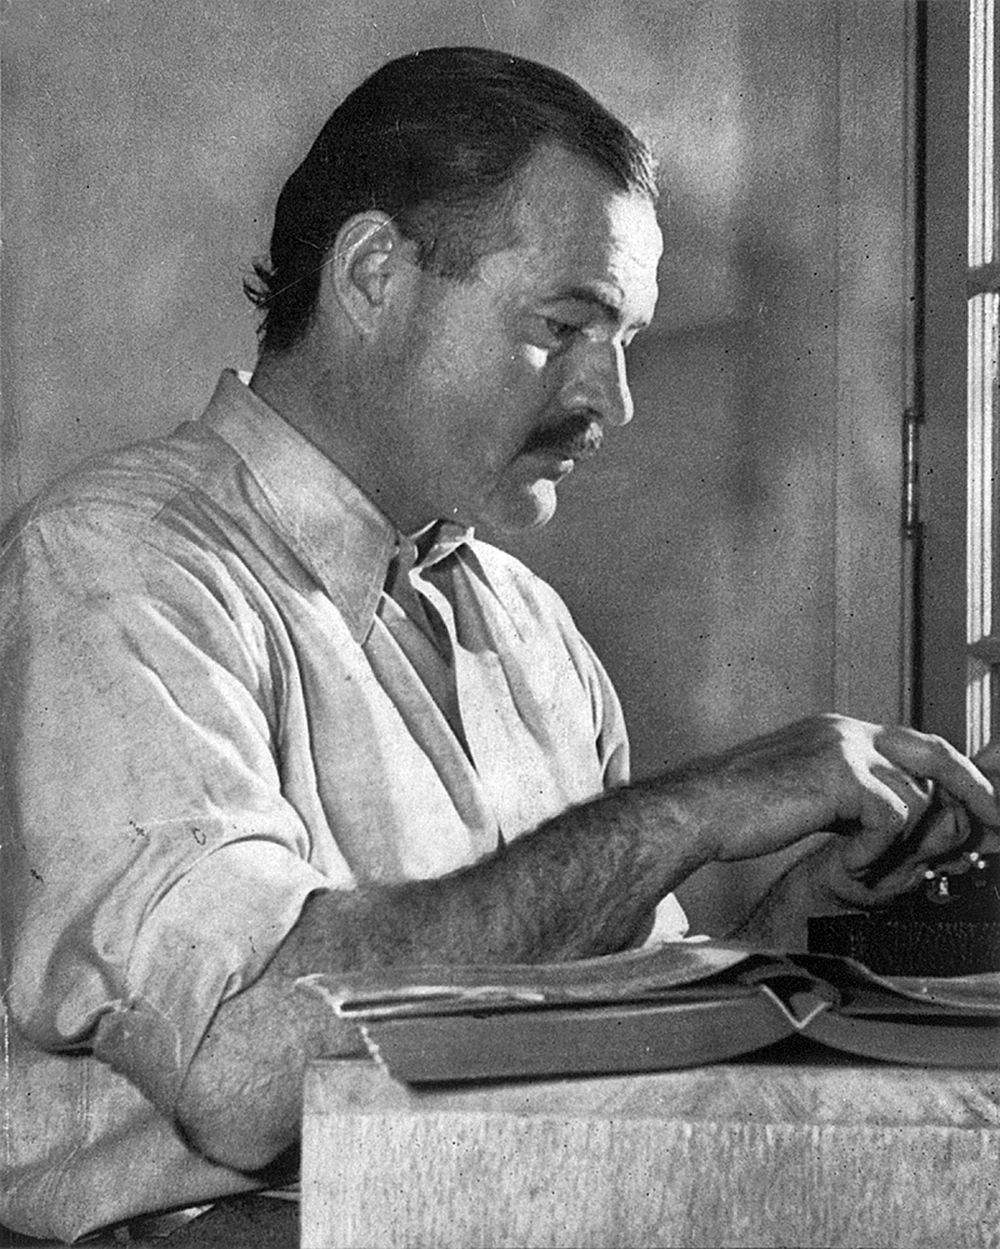 Ernest Hemingway working at his book For Whom the Bell Tolls at Sun Valley, Idaho in December 1939